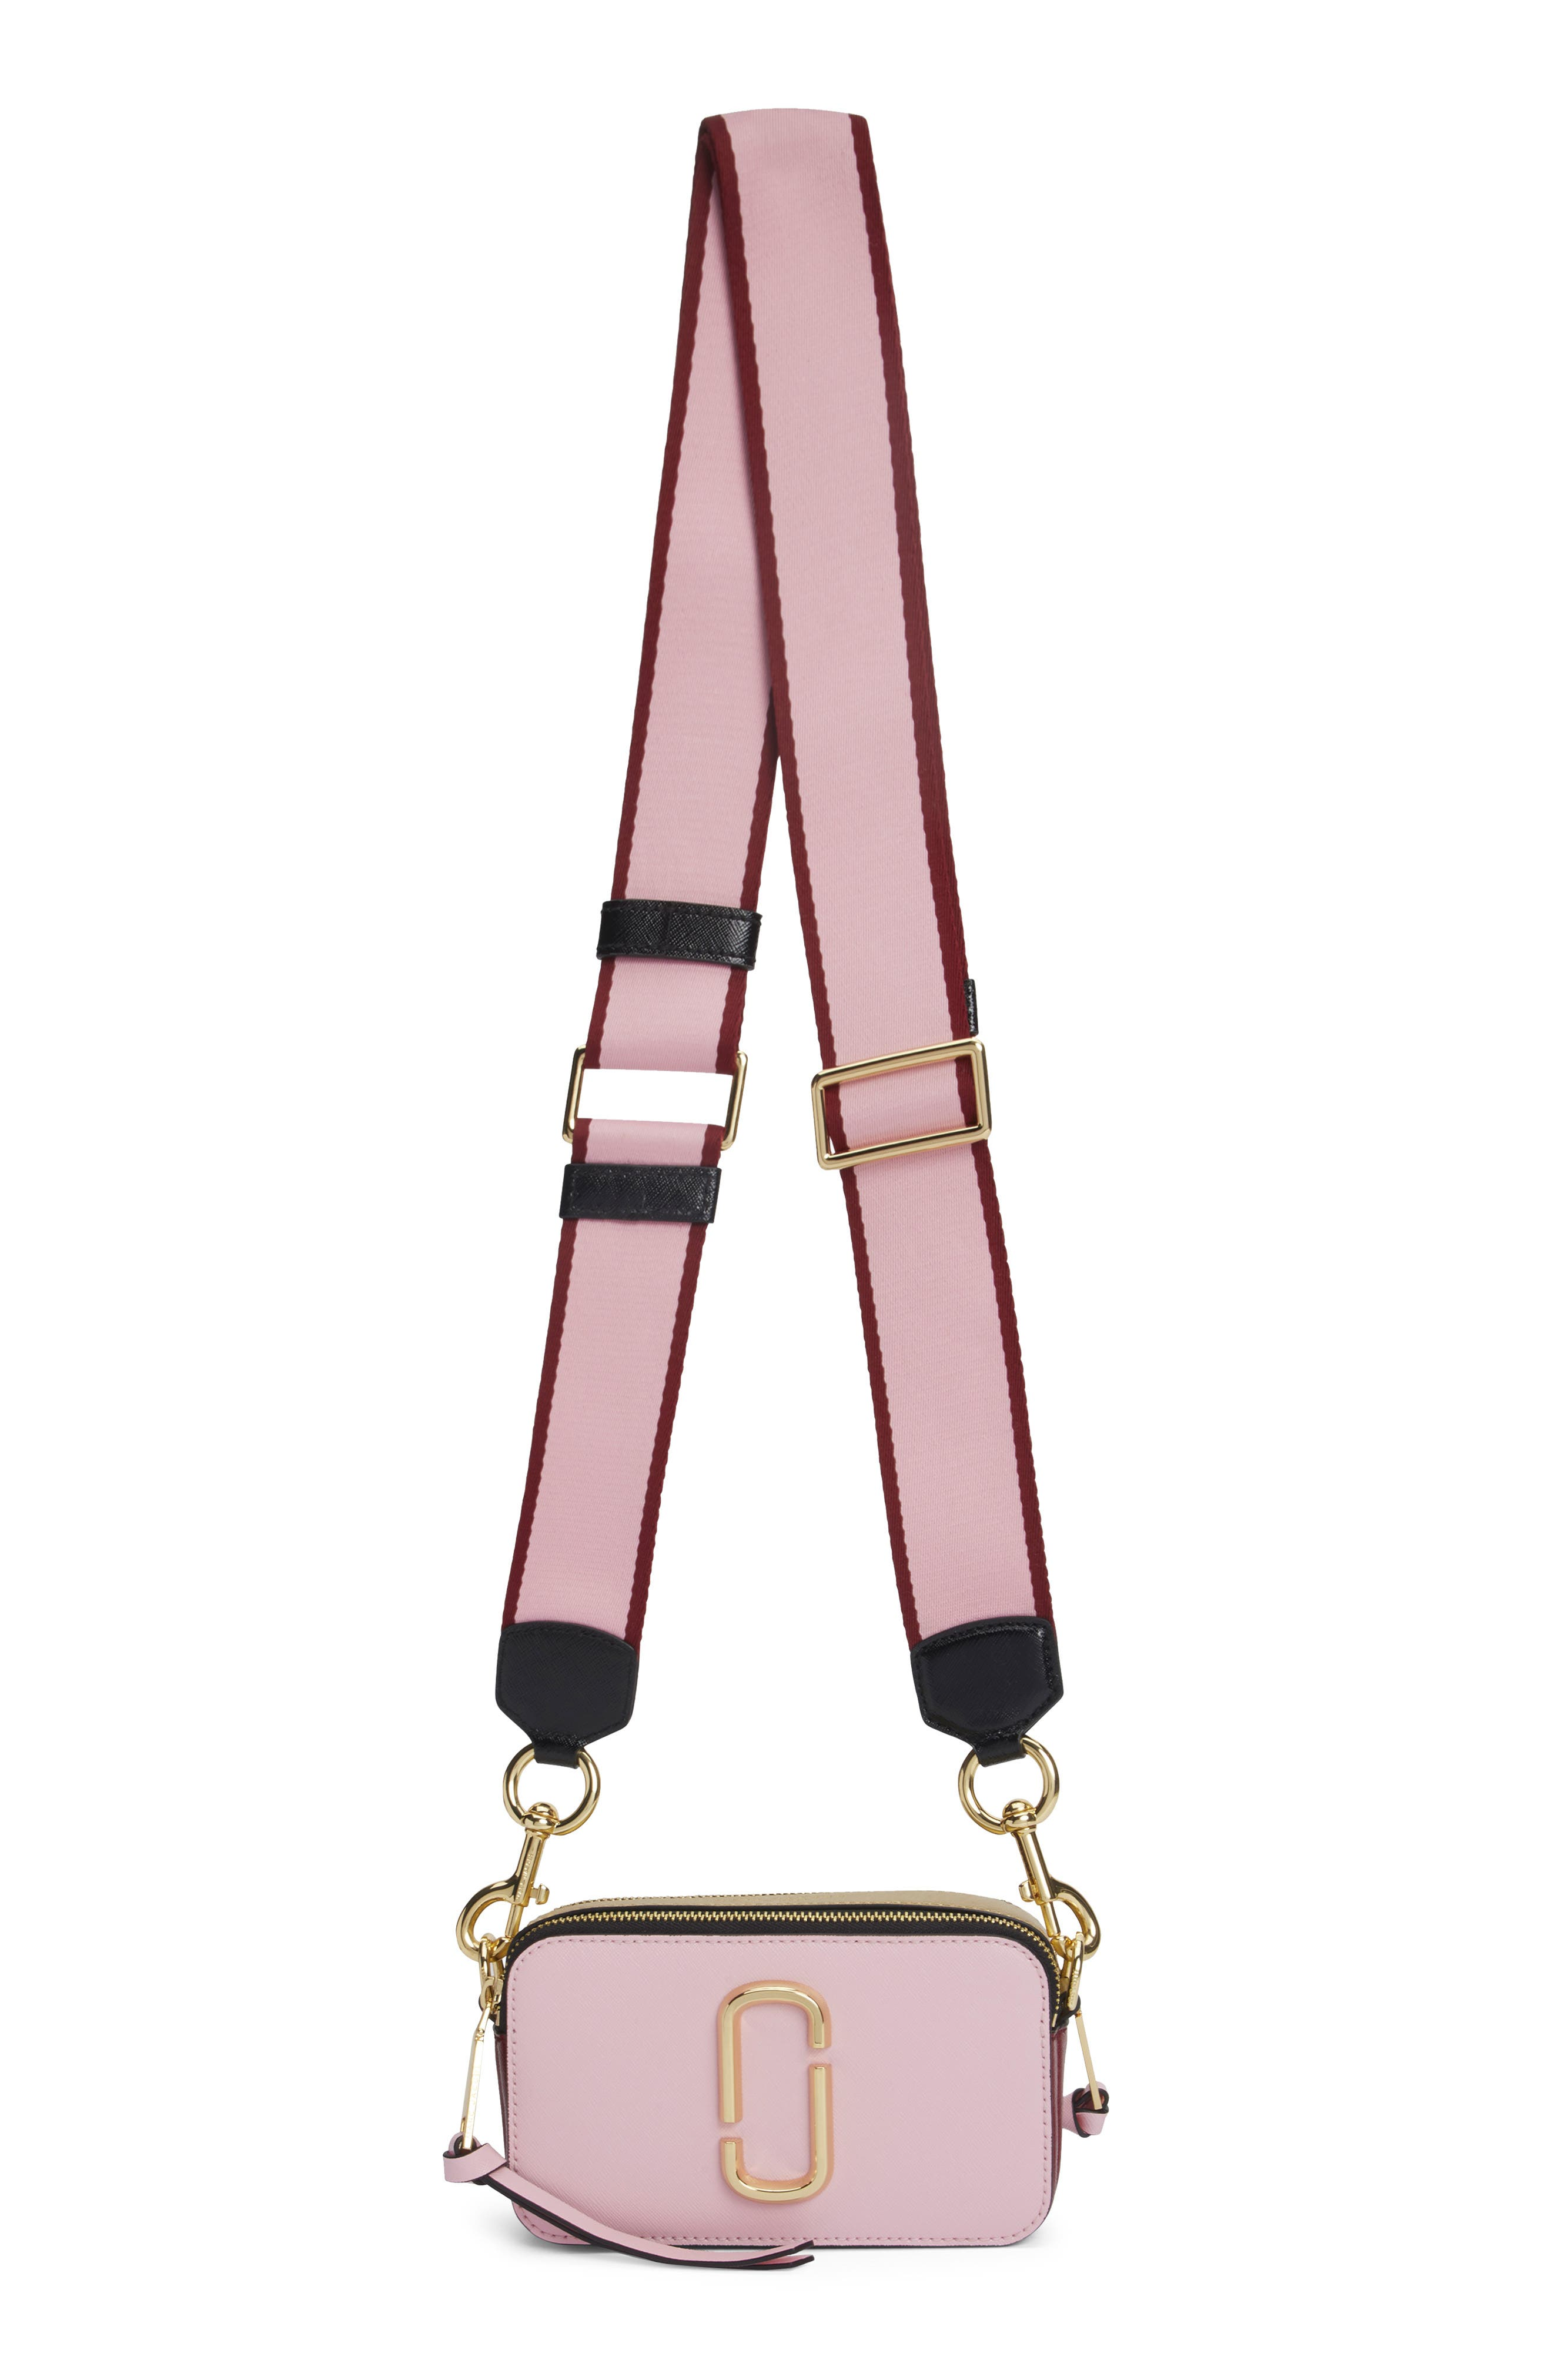 MARC JACOBS,                             Snapshot Crossbody Bag,                             Alternate thumbnail 5, color,                             BABY PINK/ RED